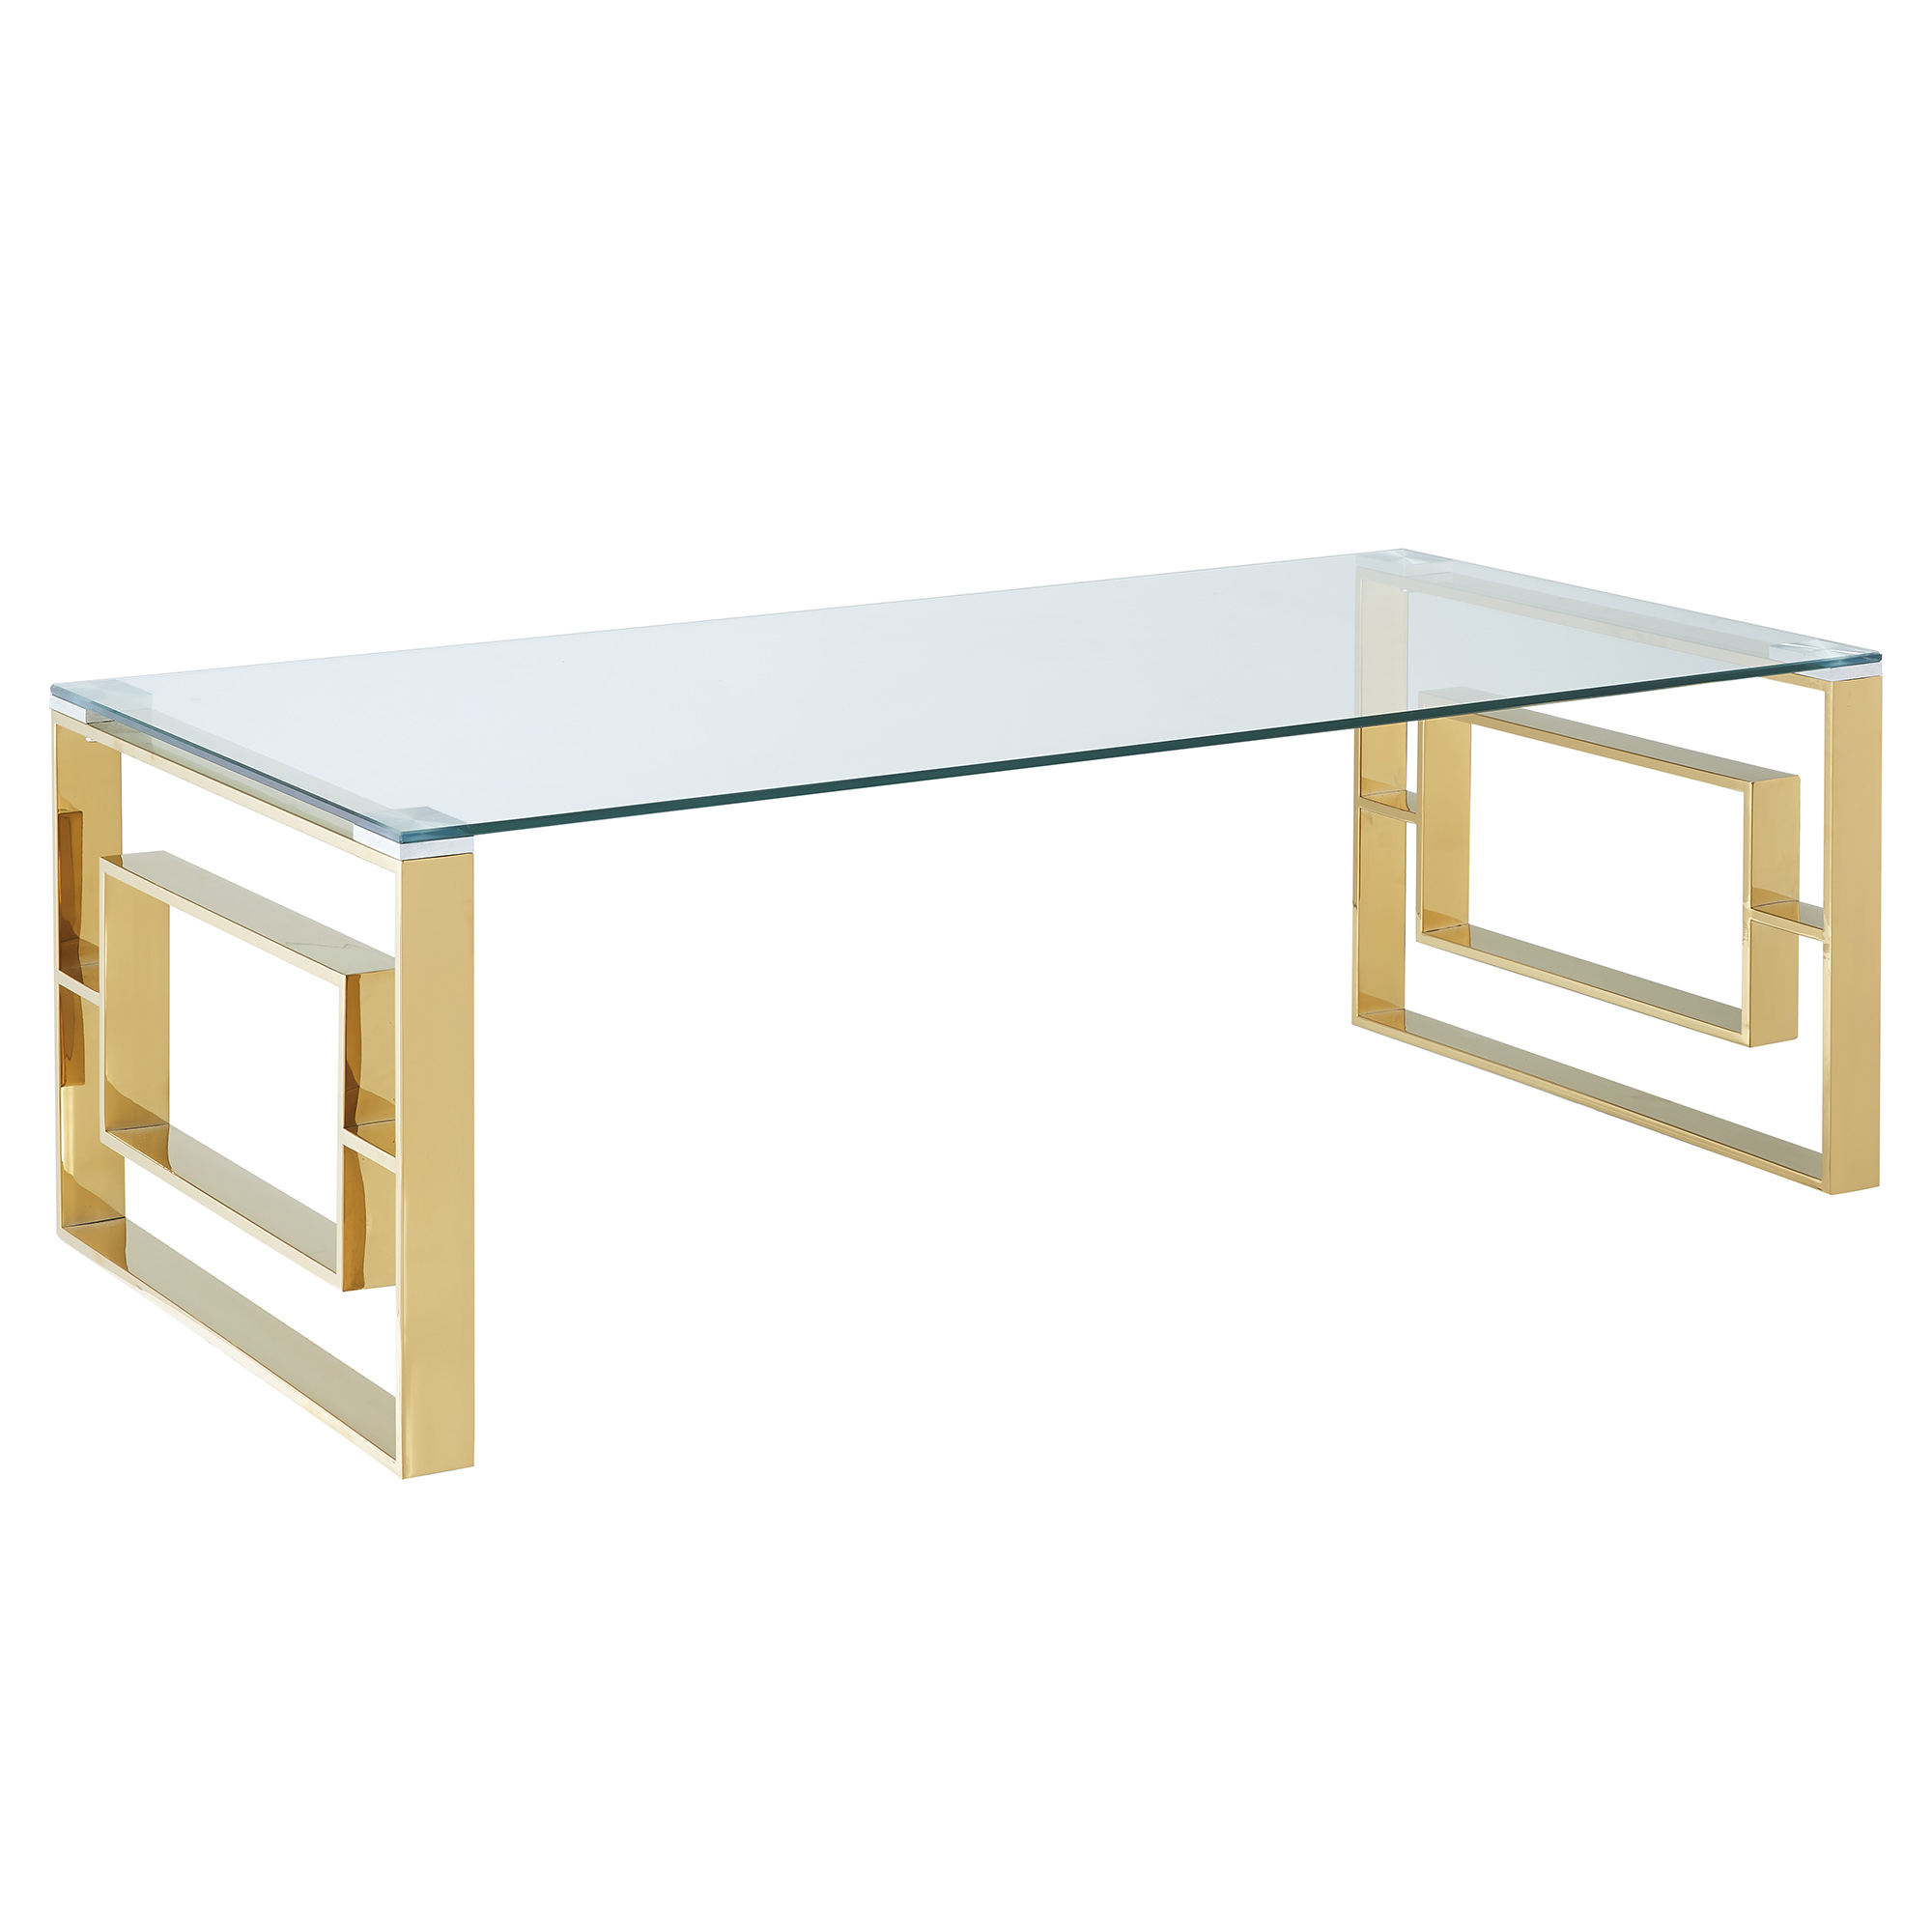 EROS-COFFEE TABLE-GOLD, 841173032296, Console Table by Midha Furniture to Brampton, Mississauga, Etobicoke, Toronto, Scraborough, Caledon, Oakville, Markham, Ajax, Pickering, Oshawa, Richmondhill, Kitchener, Hamilton and GTA area